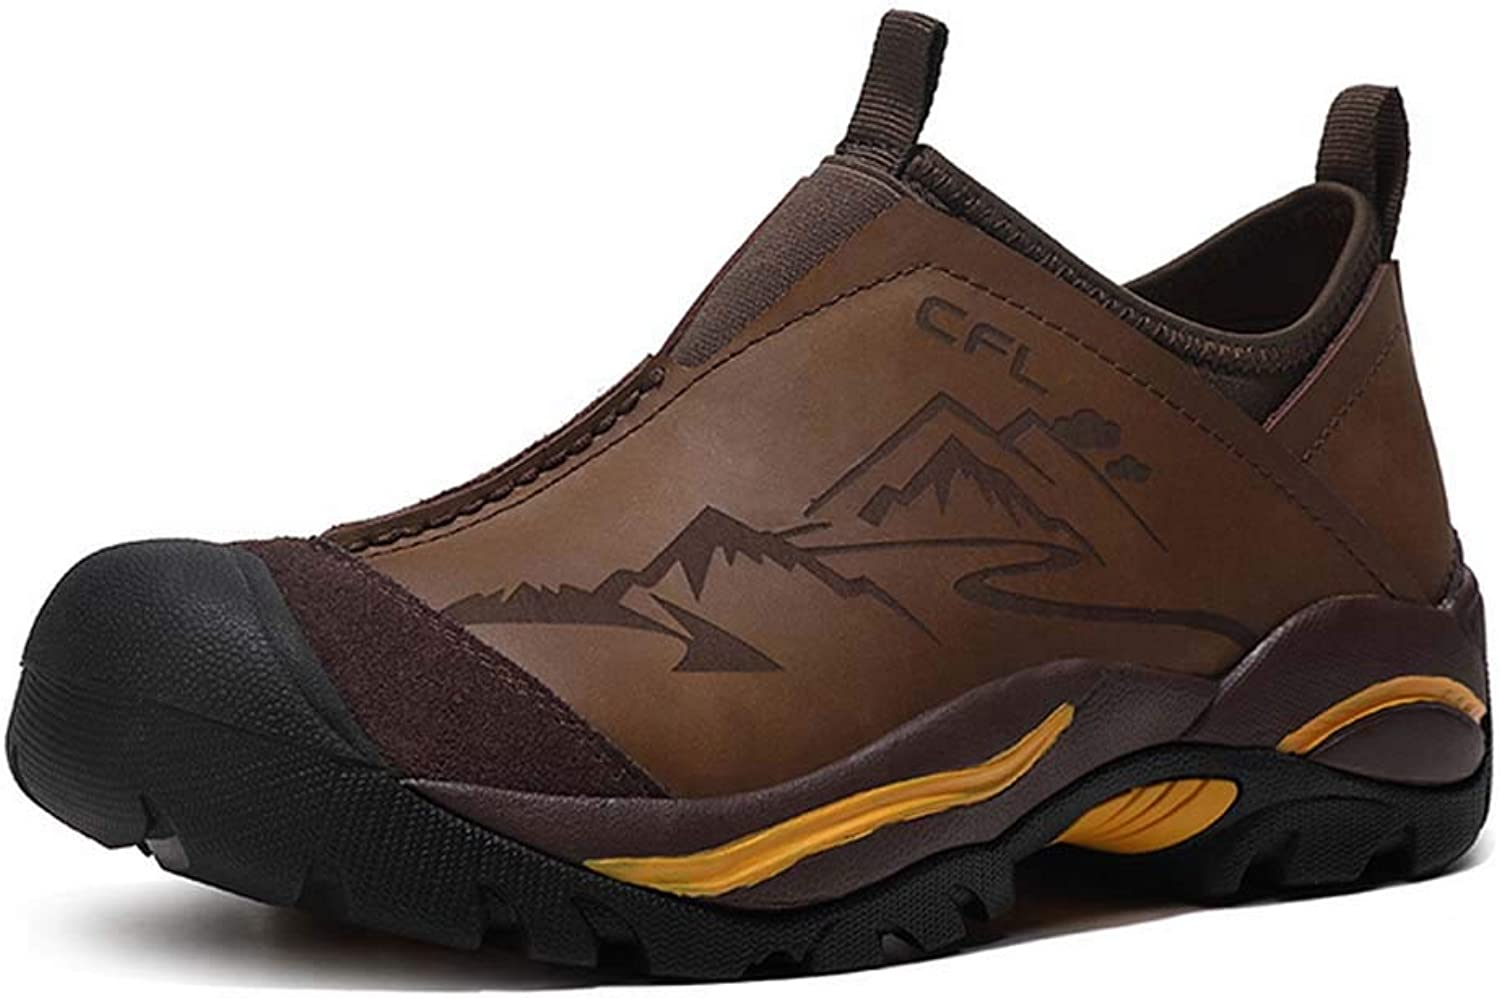 Hiking shoes Men Walking shoes,Outdoor Sneaker,Breathable Hiking Footwear Casual Comfortable Running shoes Waterproof Safety Boots